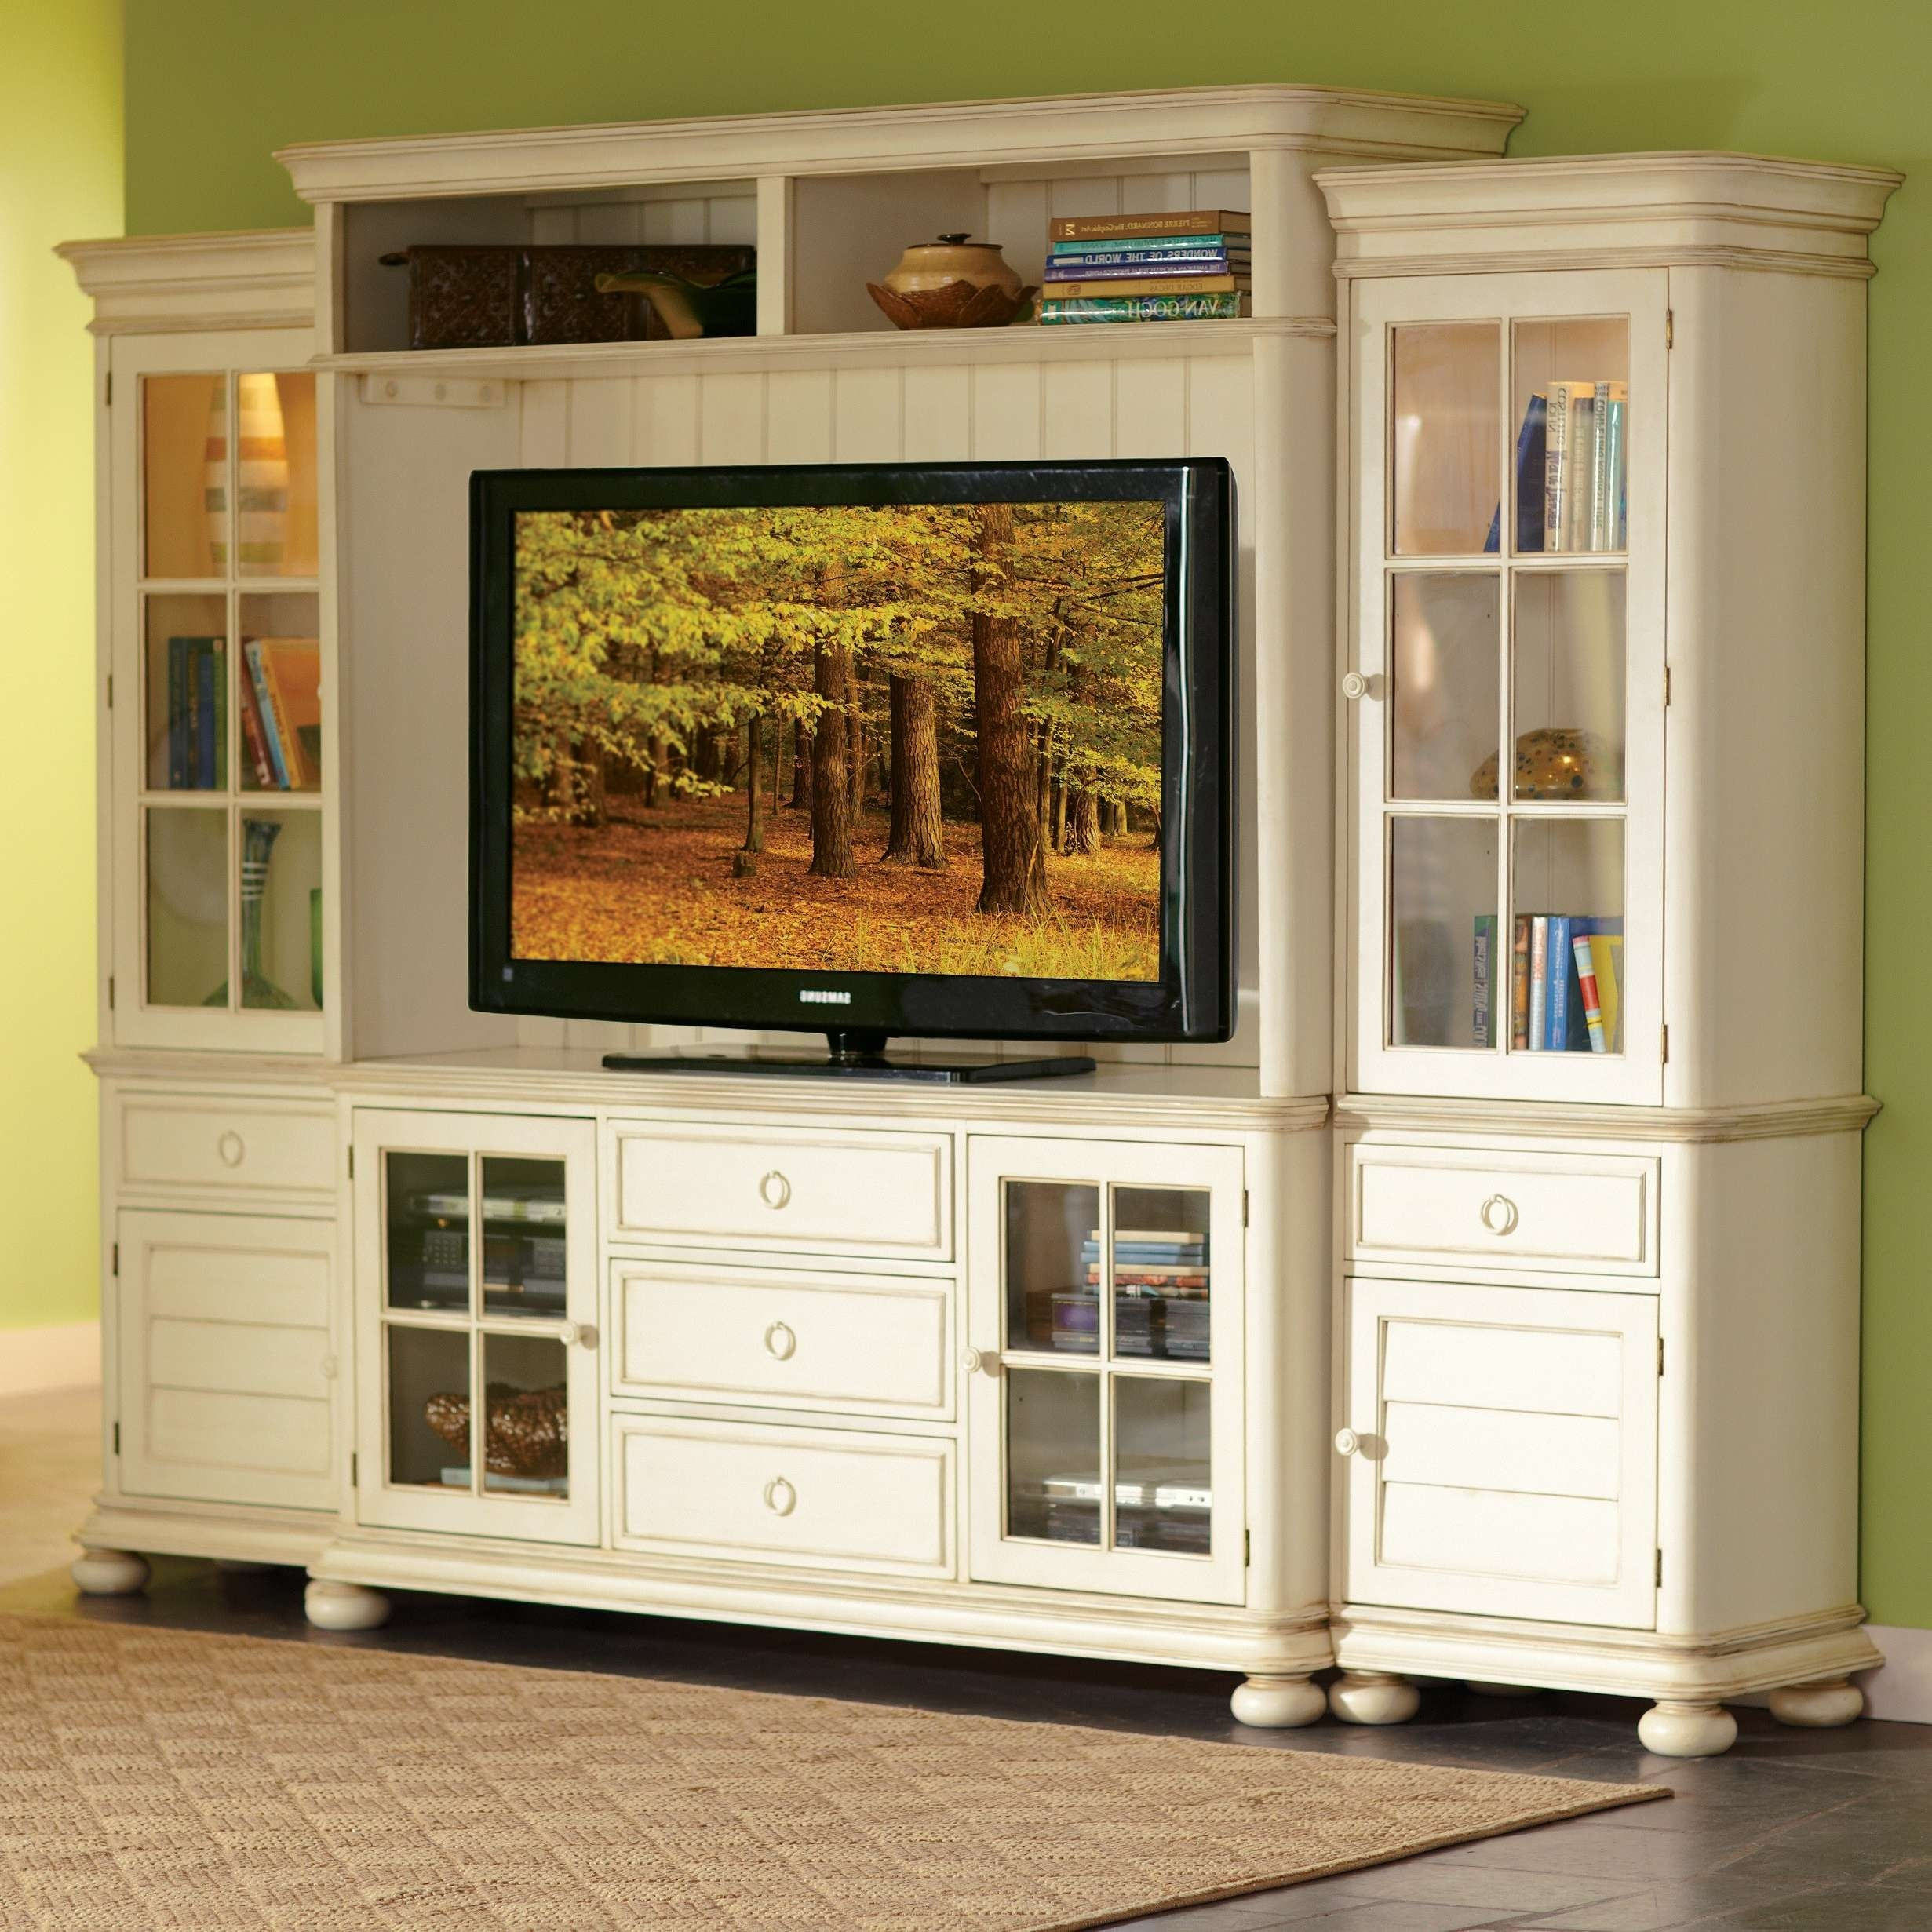 Vintage White Mahogany Wood Media Cabinet With Glass Doors Storage Within Wooden Tv Cabinets With Glass Doors (Gallery 9 of 20)